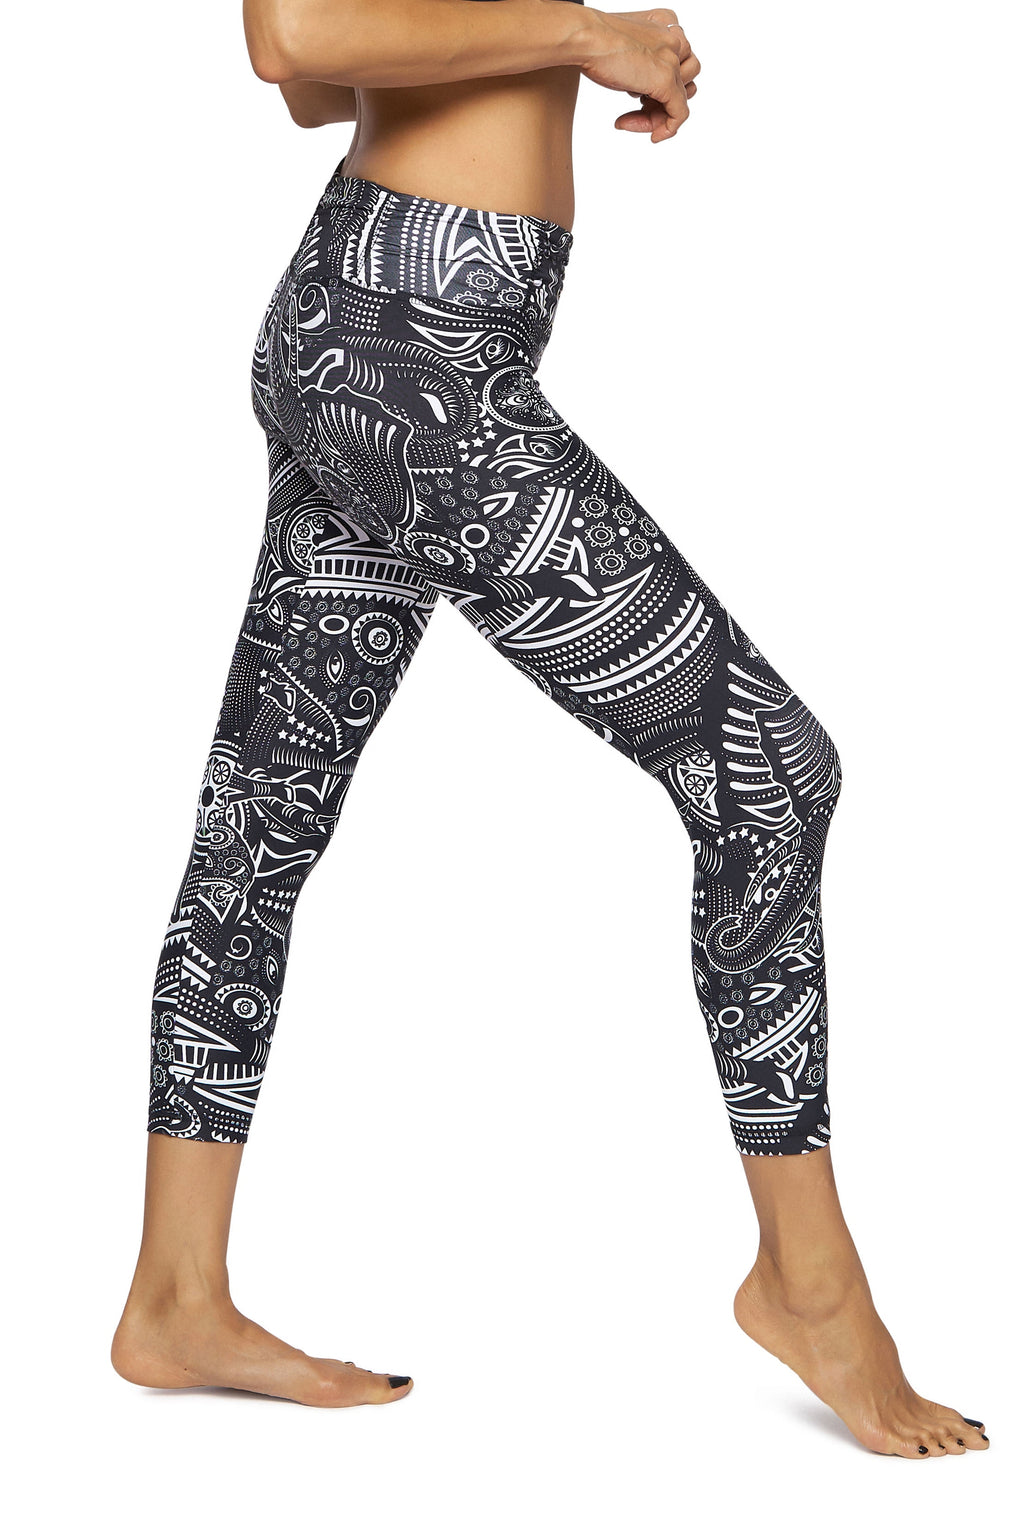 967971e19 Brasilfit Crazy Prints - Limited edition exclusive printed tights